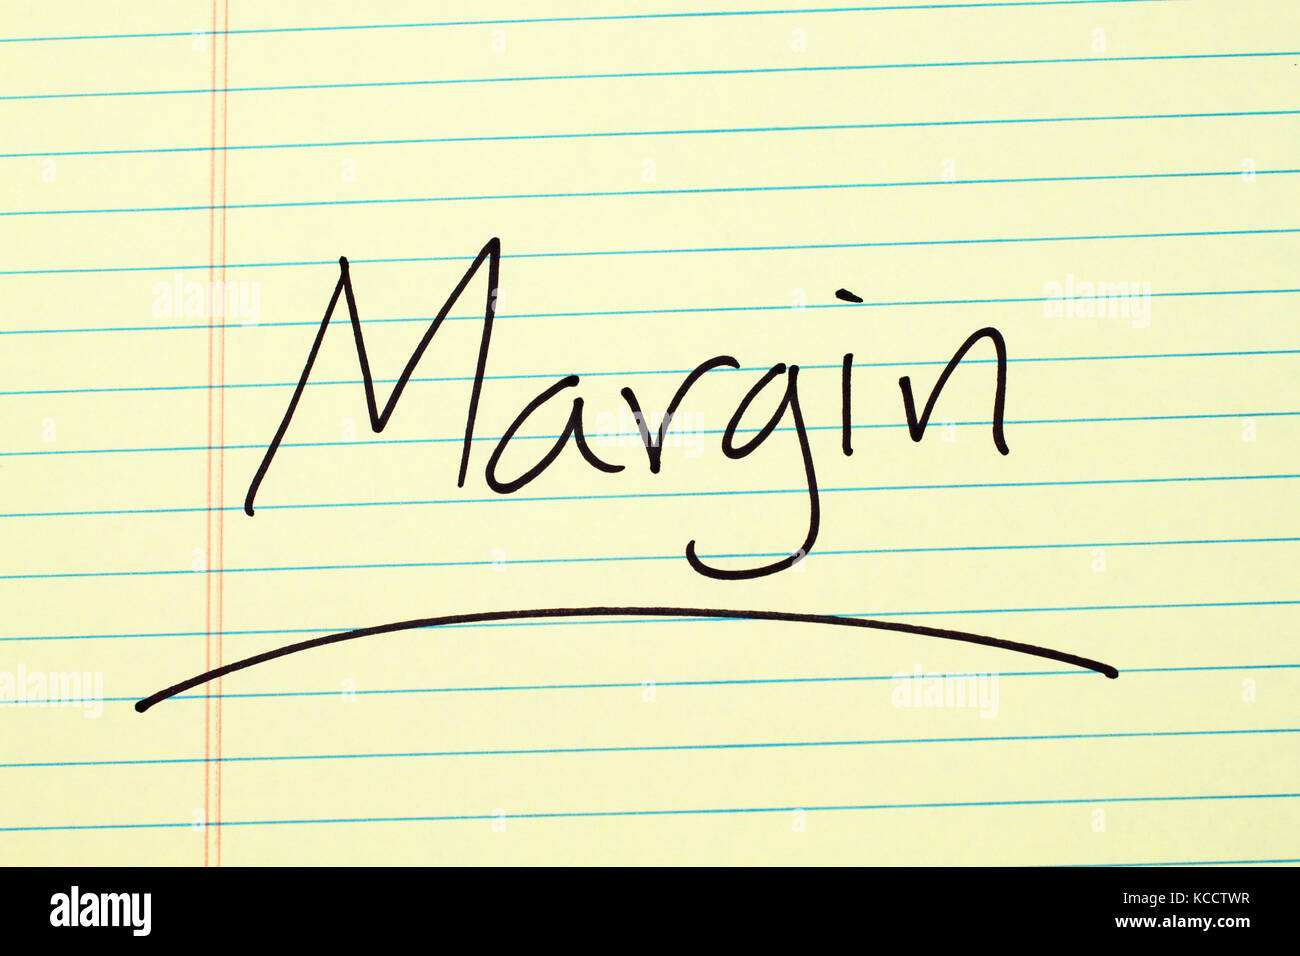 The word 'Margin' underlined on a yellow legal pad - Stock Image